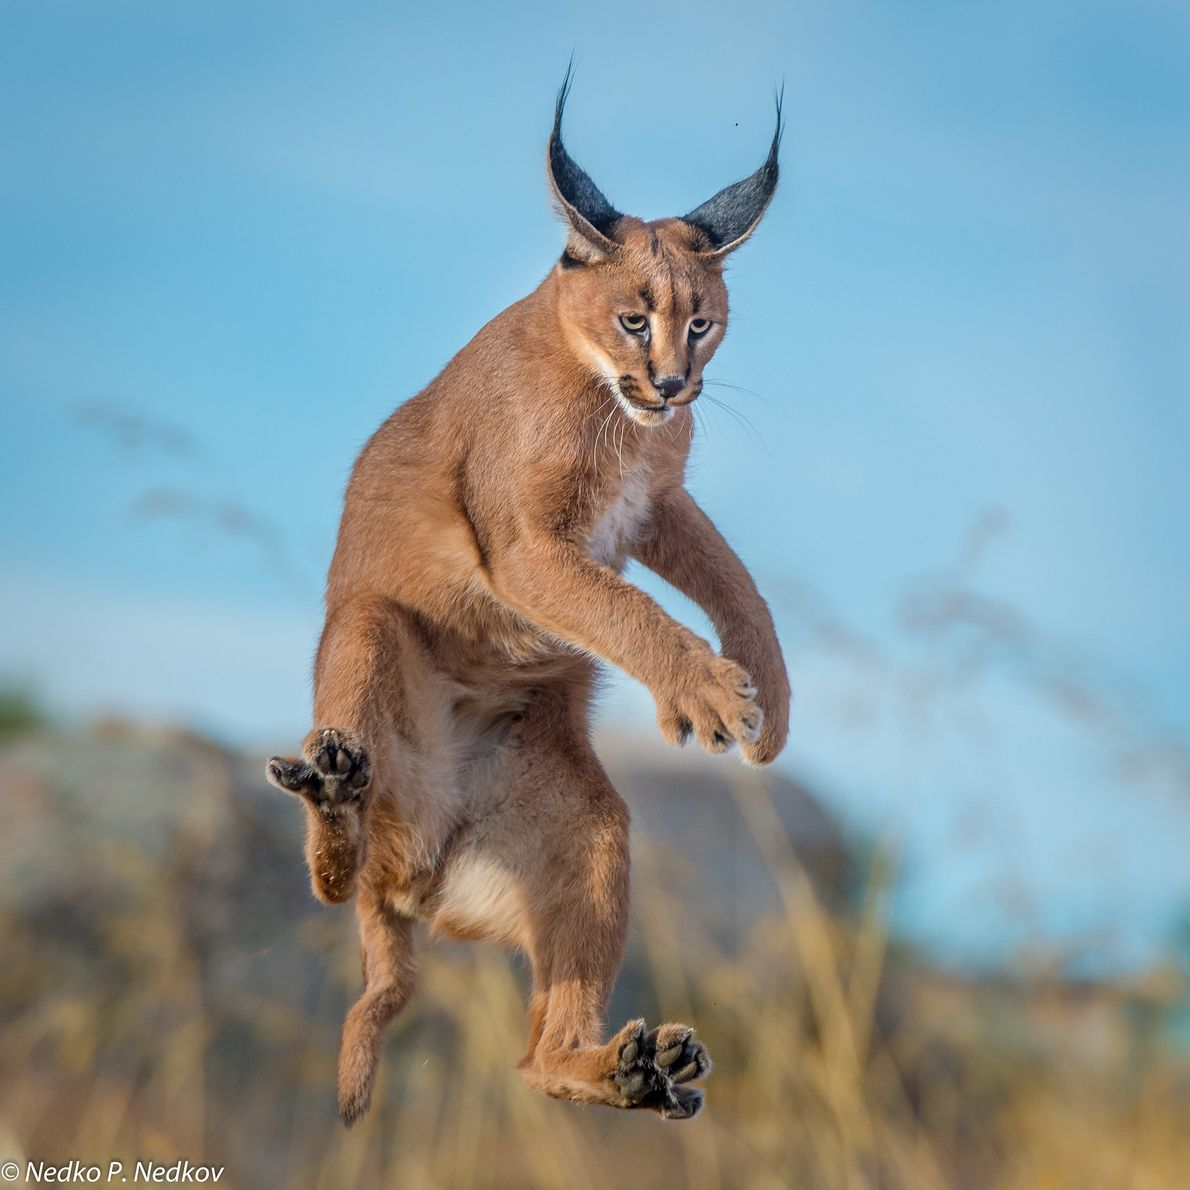 A caracal jumps to catch birds.